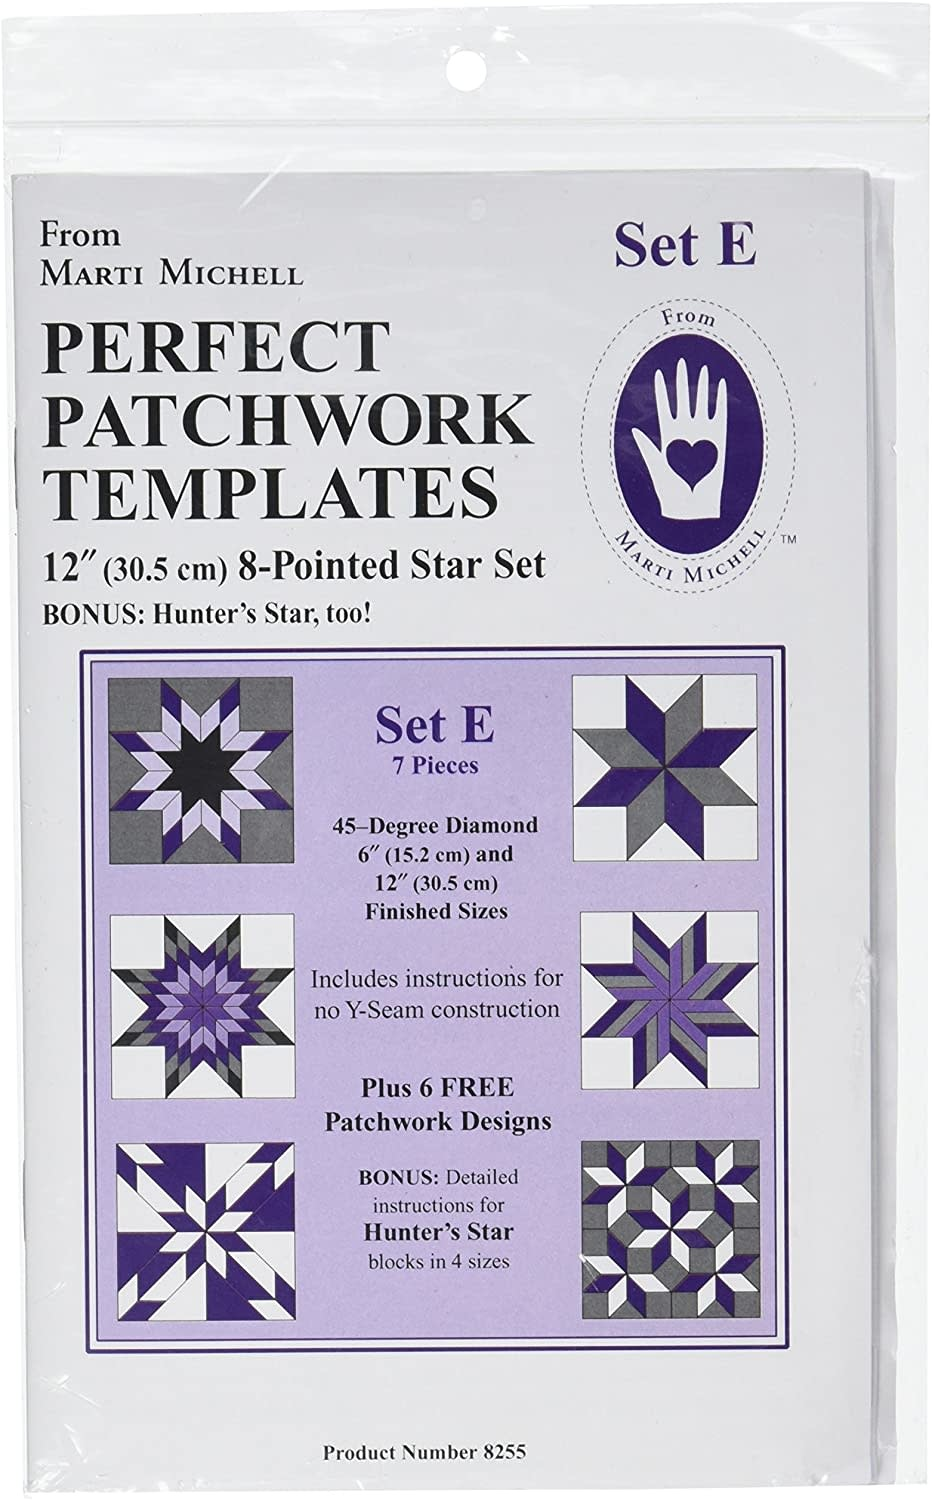 "MARTI MICHELL Perfect Patchwork Templates, Set E - 12"" 8-pointed Star set"